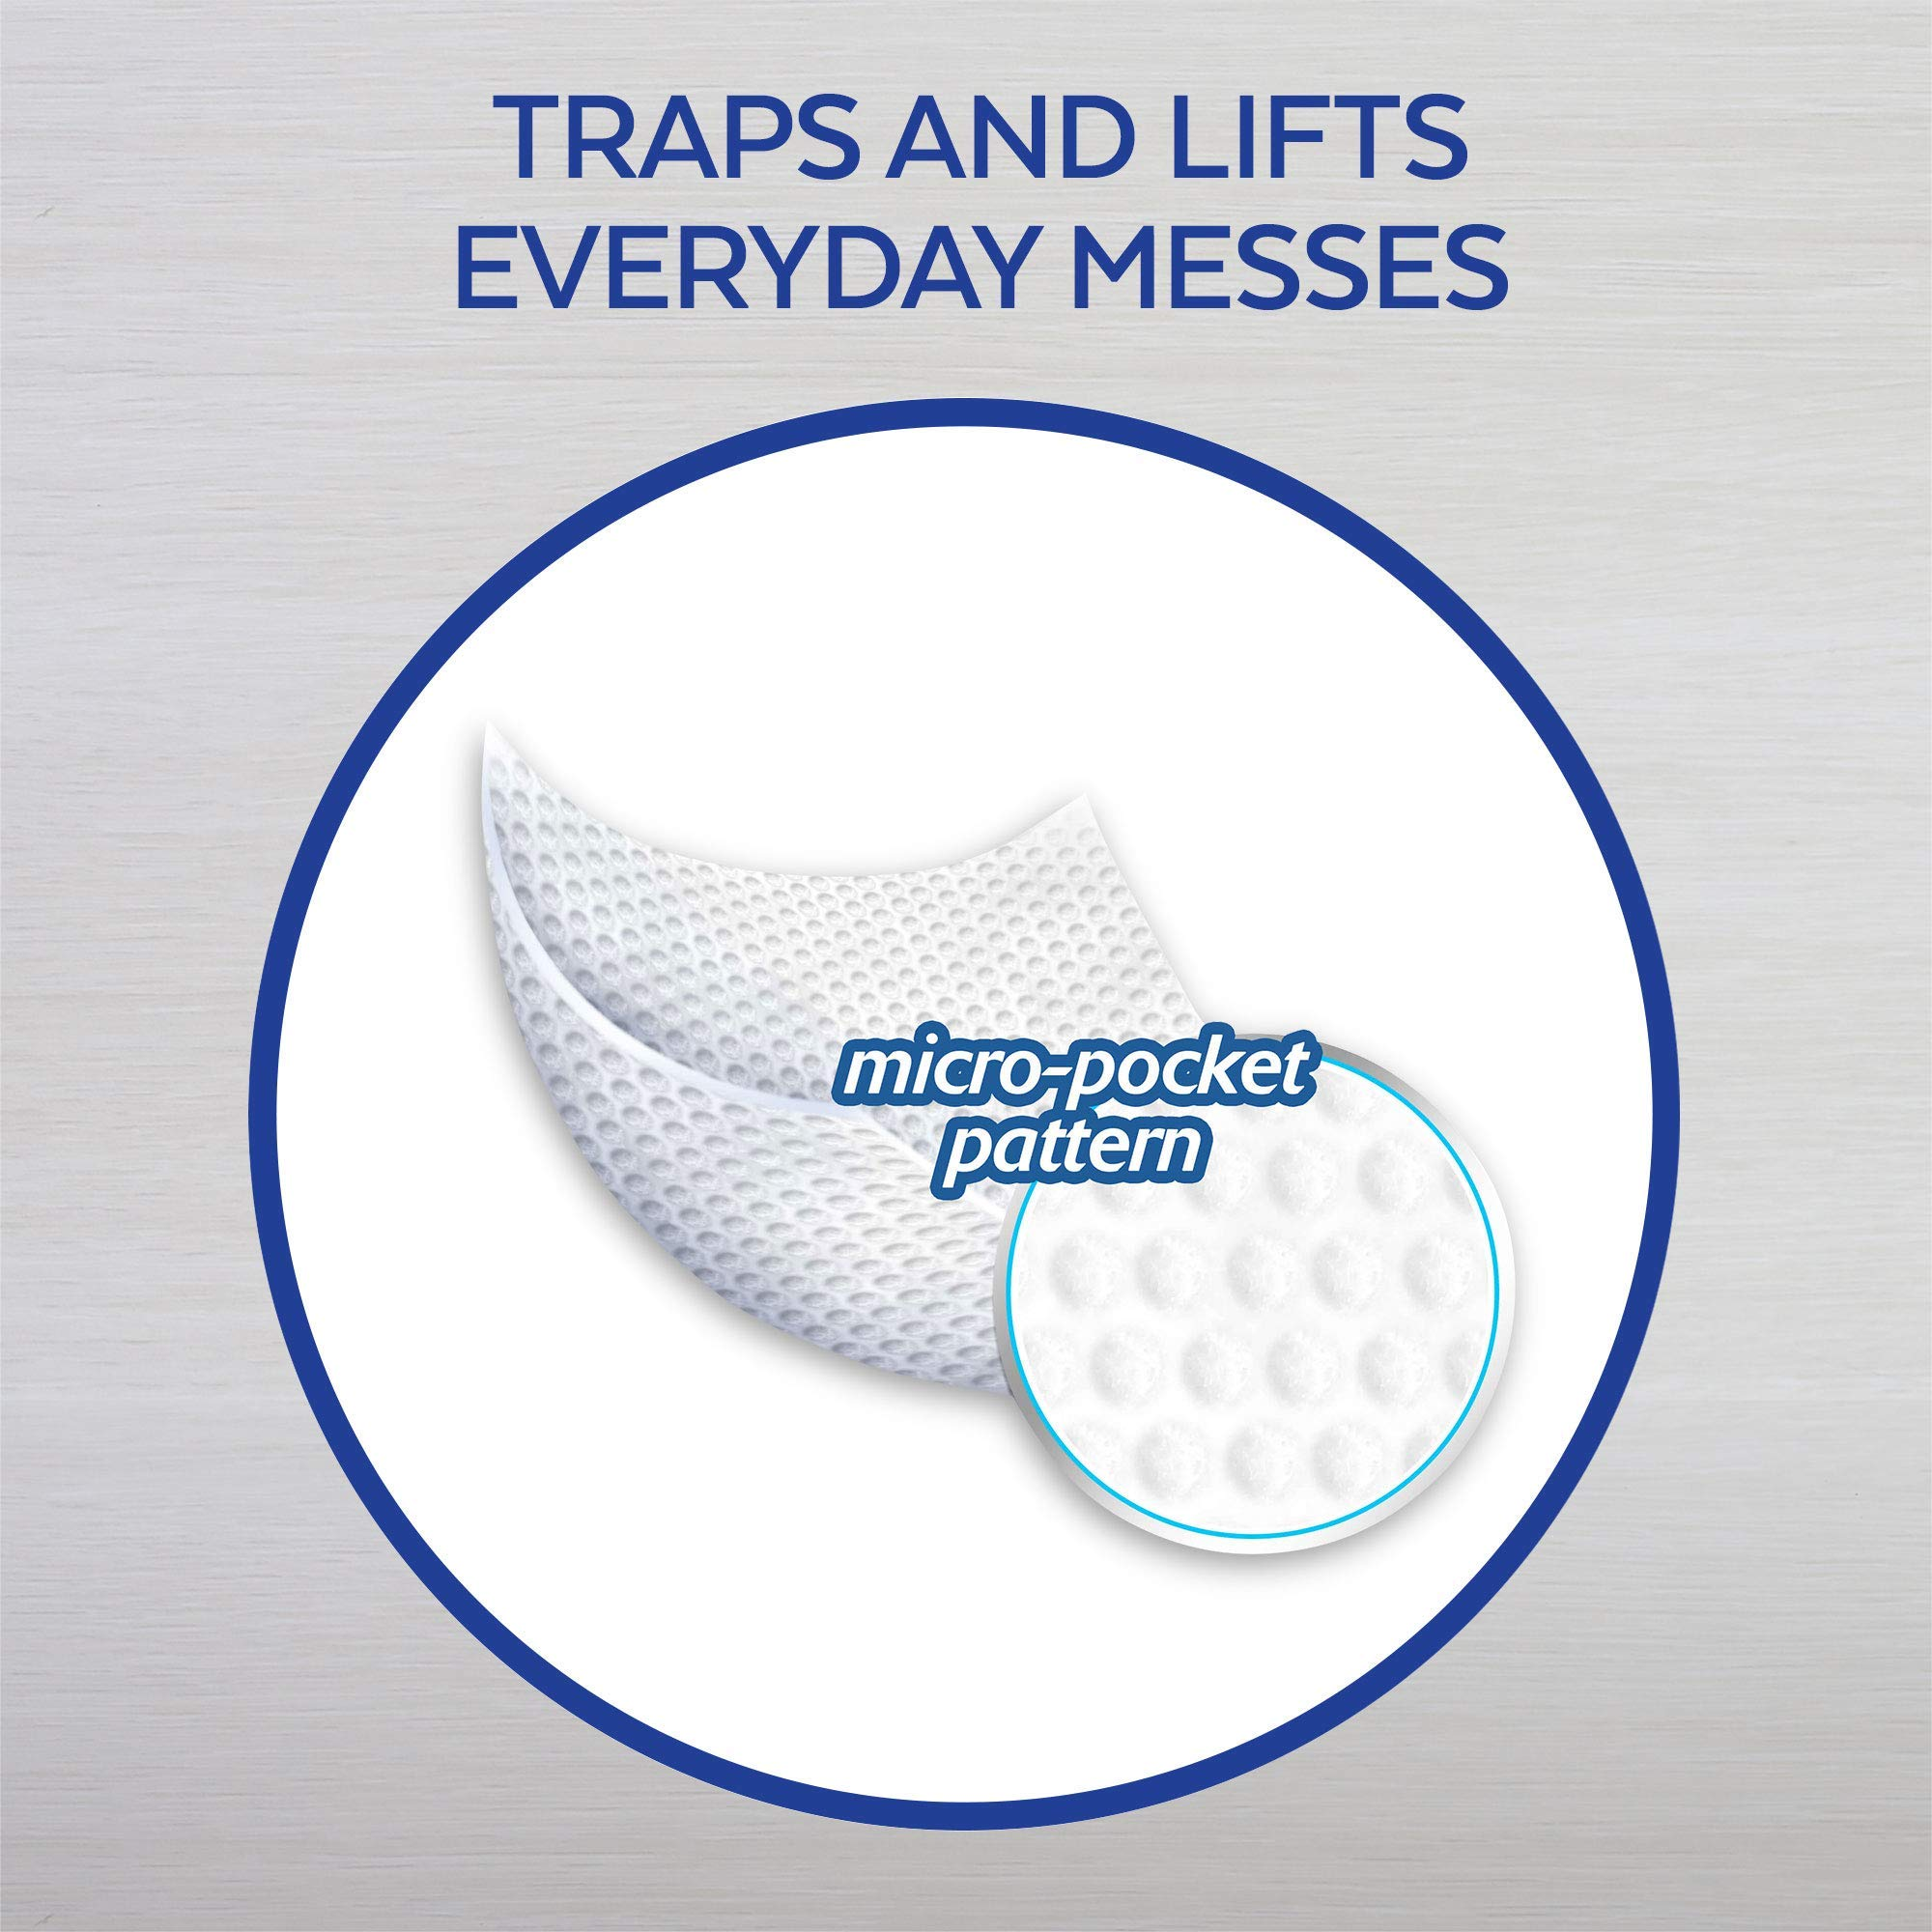 Lysol Disinfecting Wipes, Early Morning Breeze, 480 Wipes (6 Packs of 80 Wipes), Packaging May Vary by Lysol (Image #4)